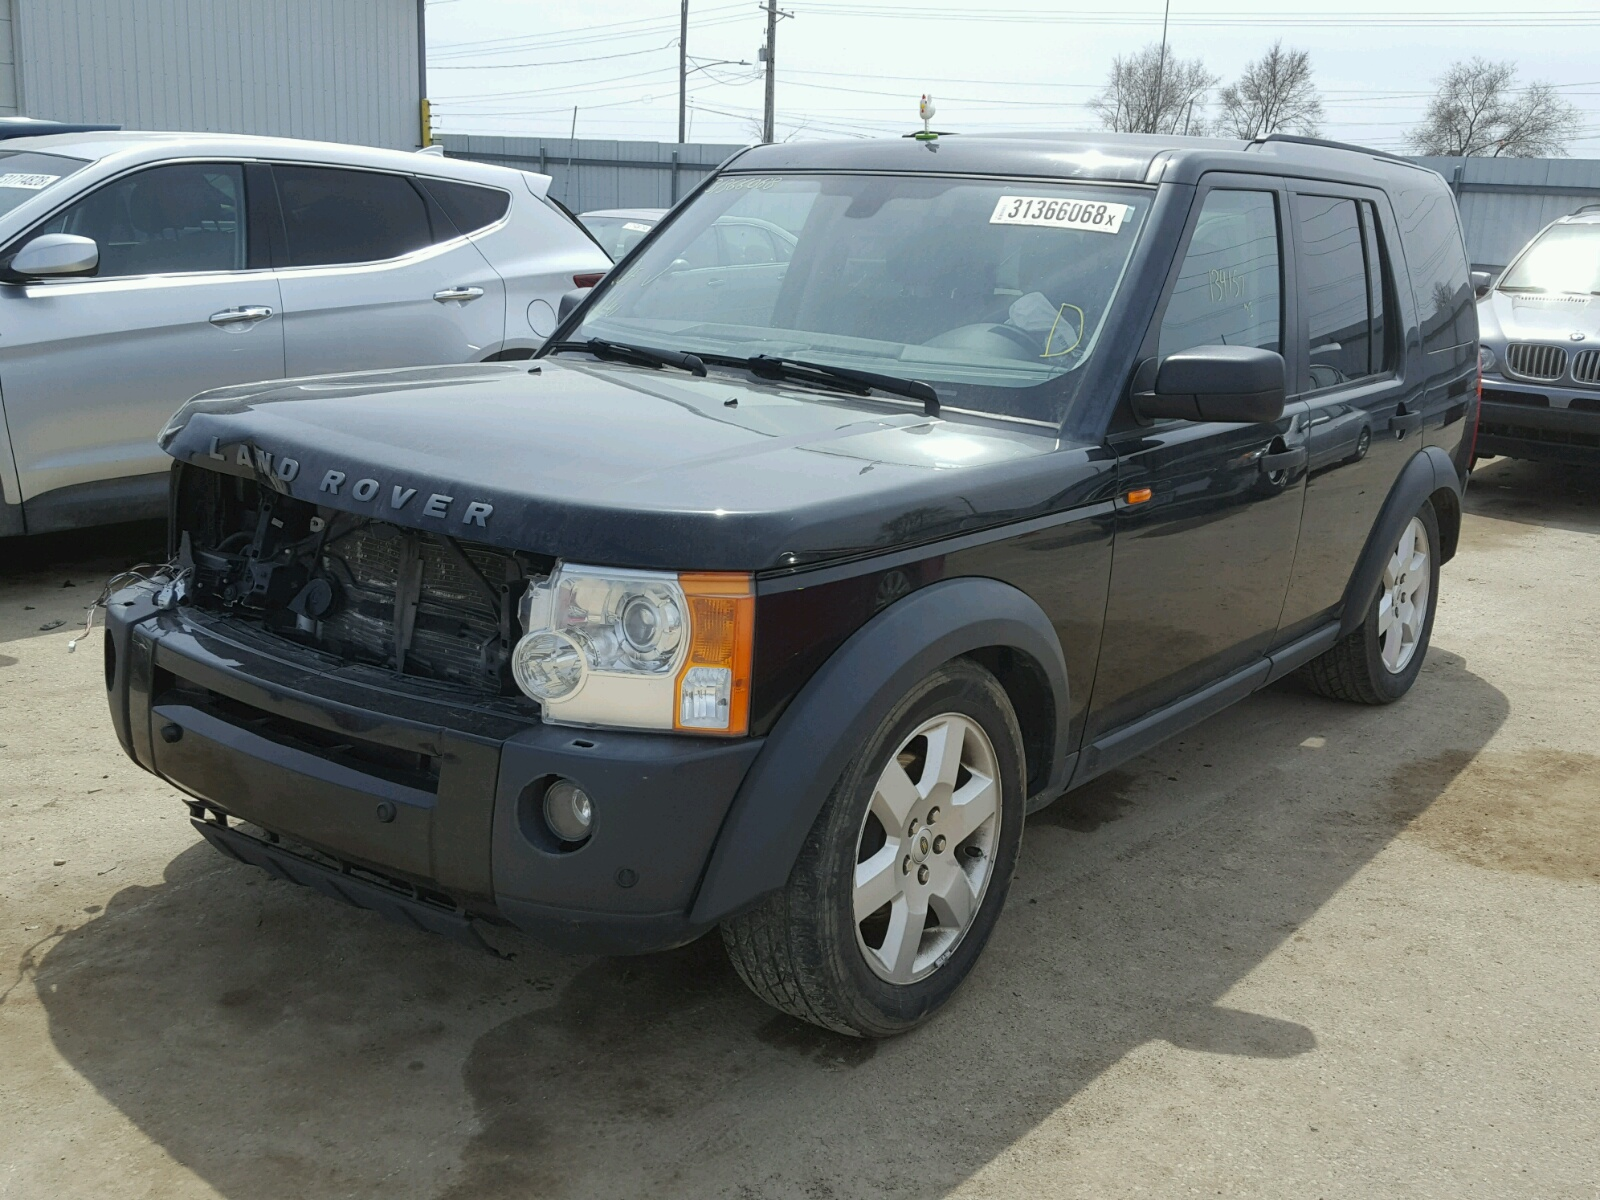 sale land blue for in landrover up san online view en lot diego copart on hse rover carfinder certificate close salvage auctions ca auto